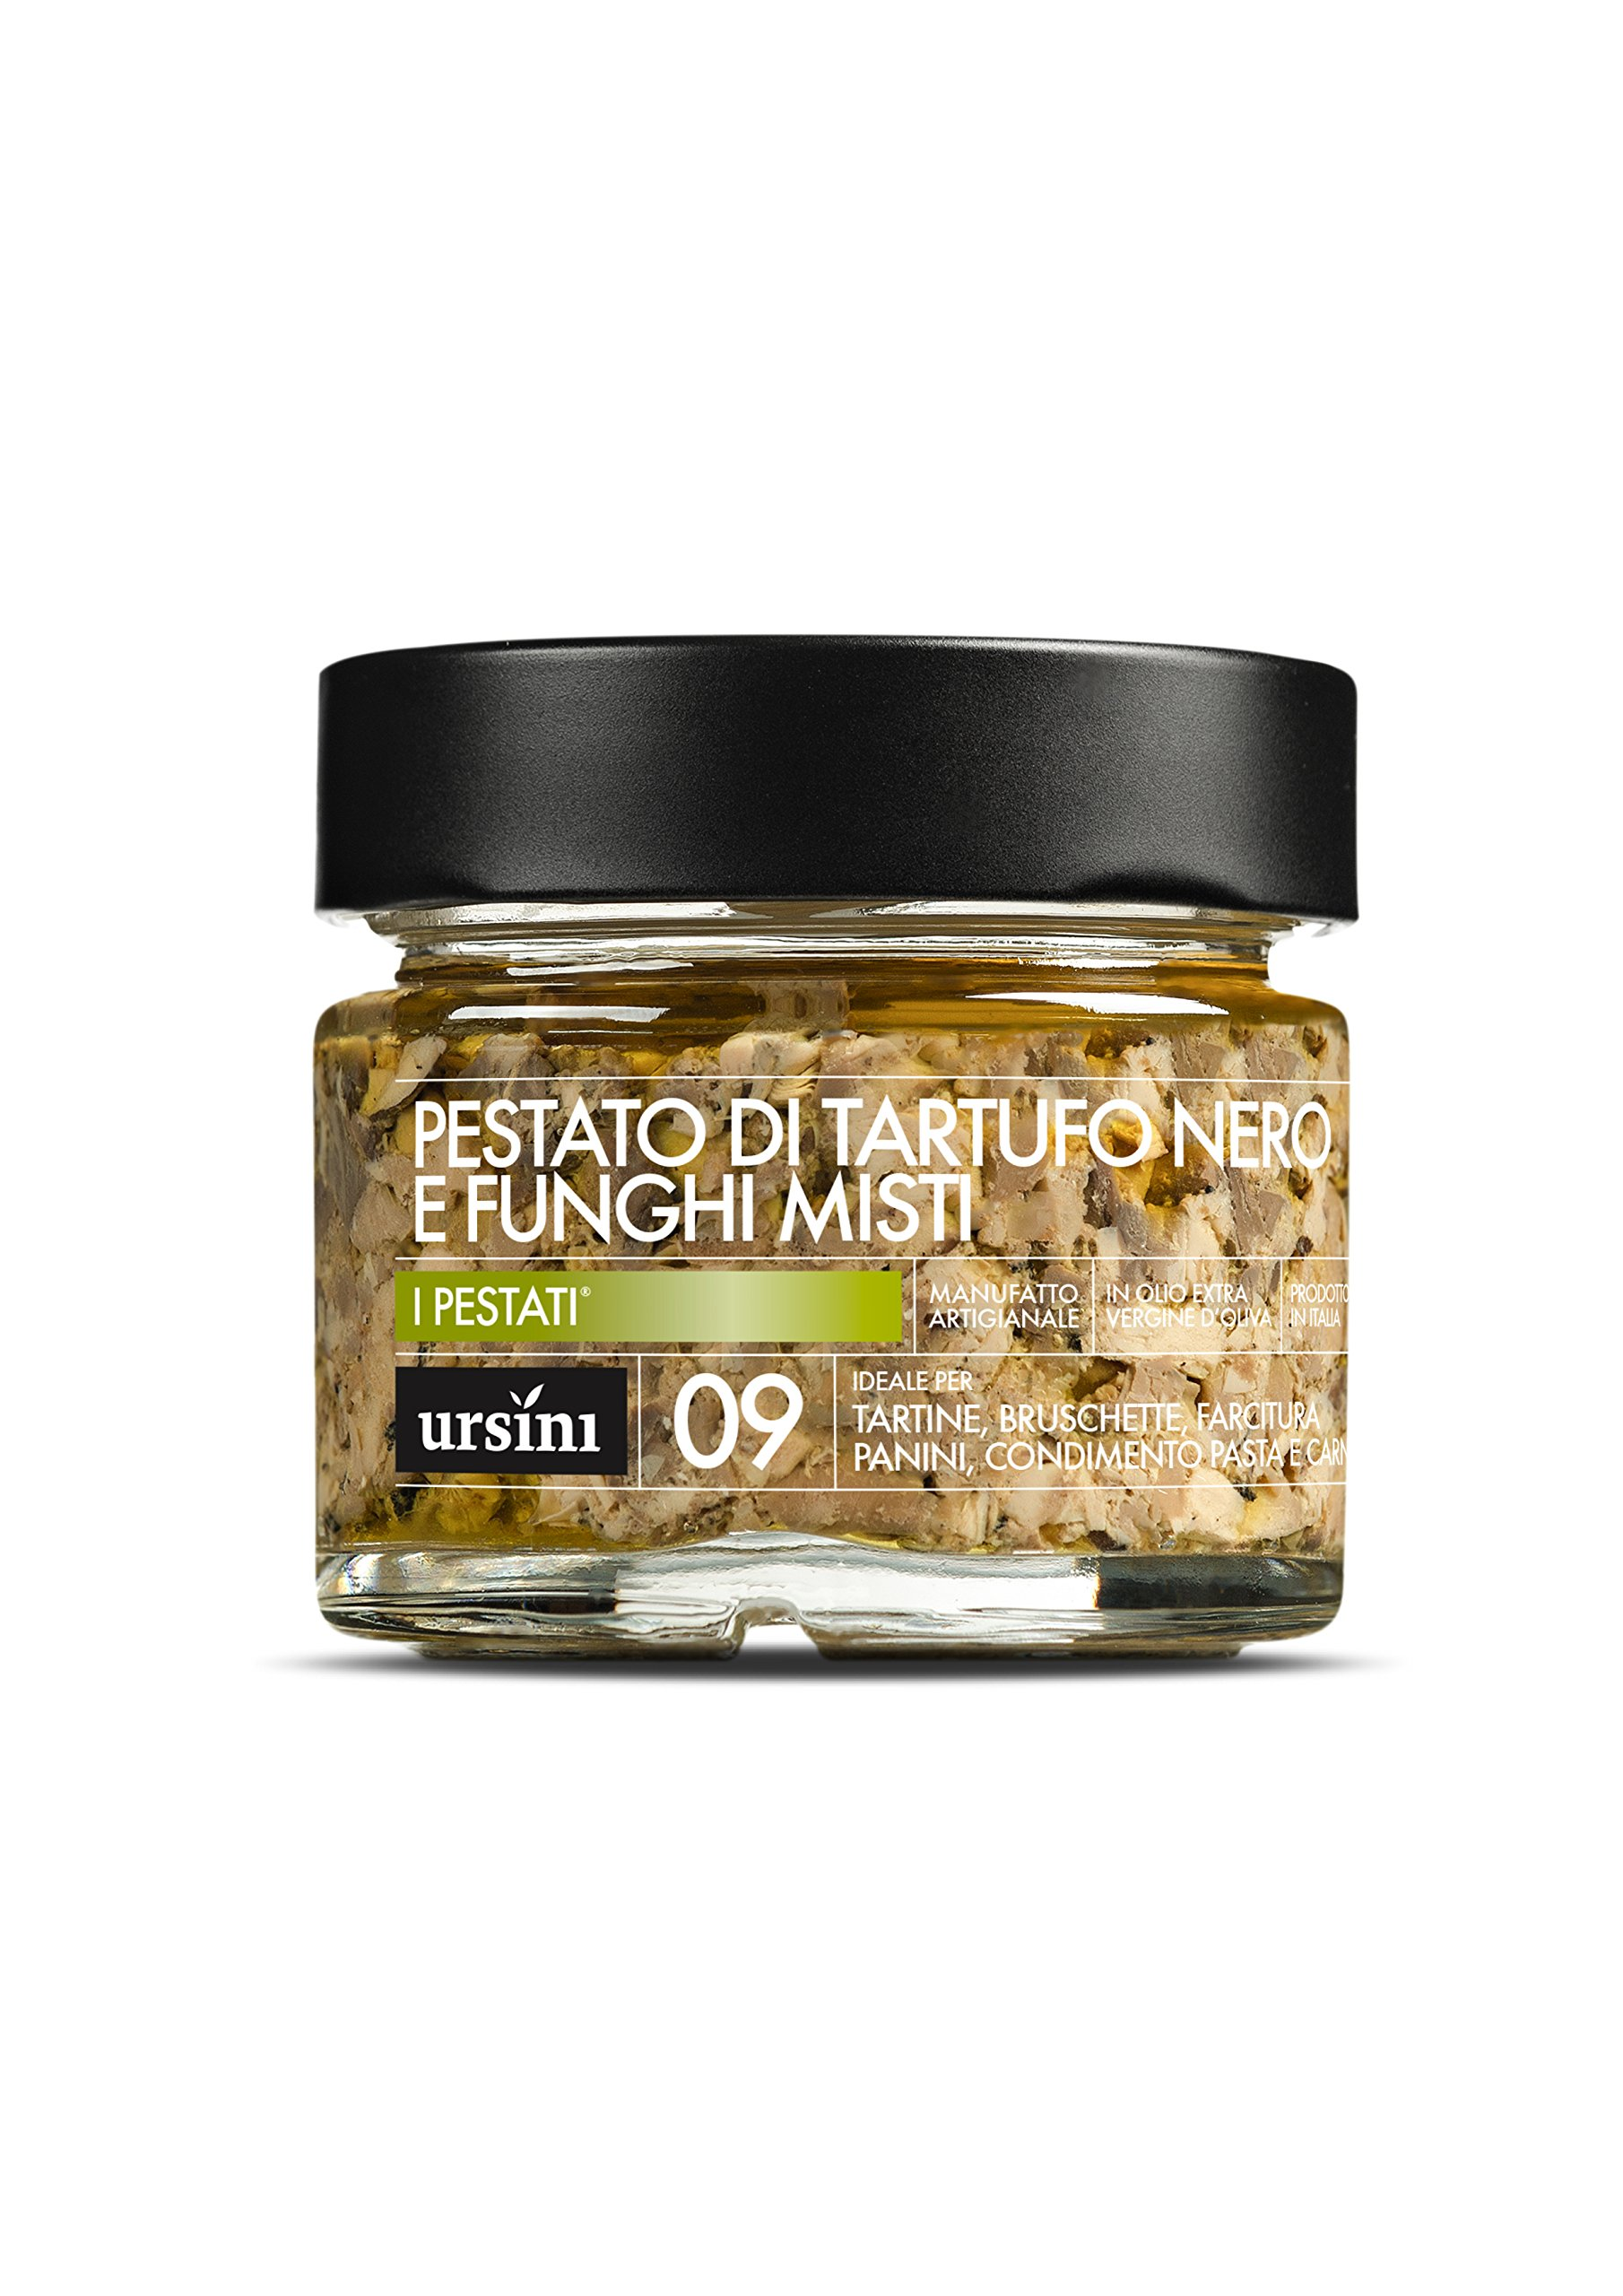 URSINI Black Truffle and Mushrooms Mix Pesto Spread (5.1oz) by Ursini (Image #1)